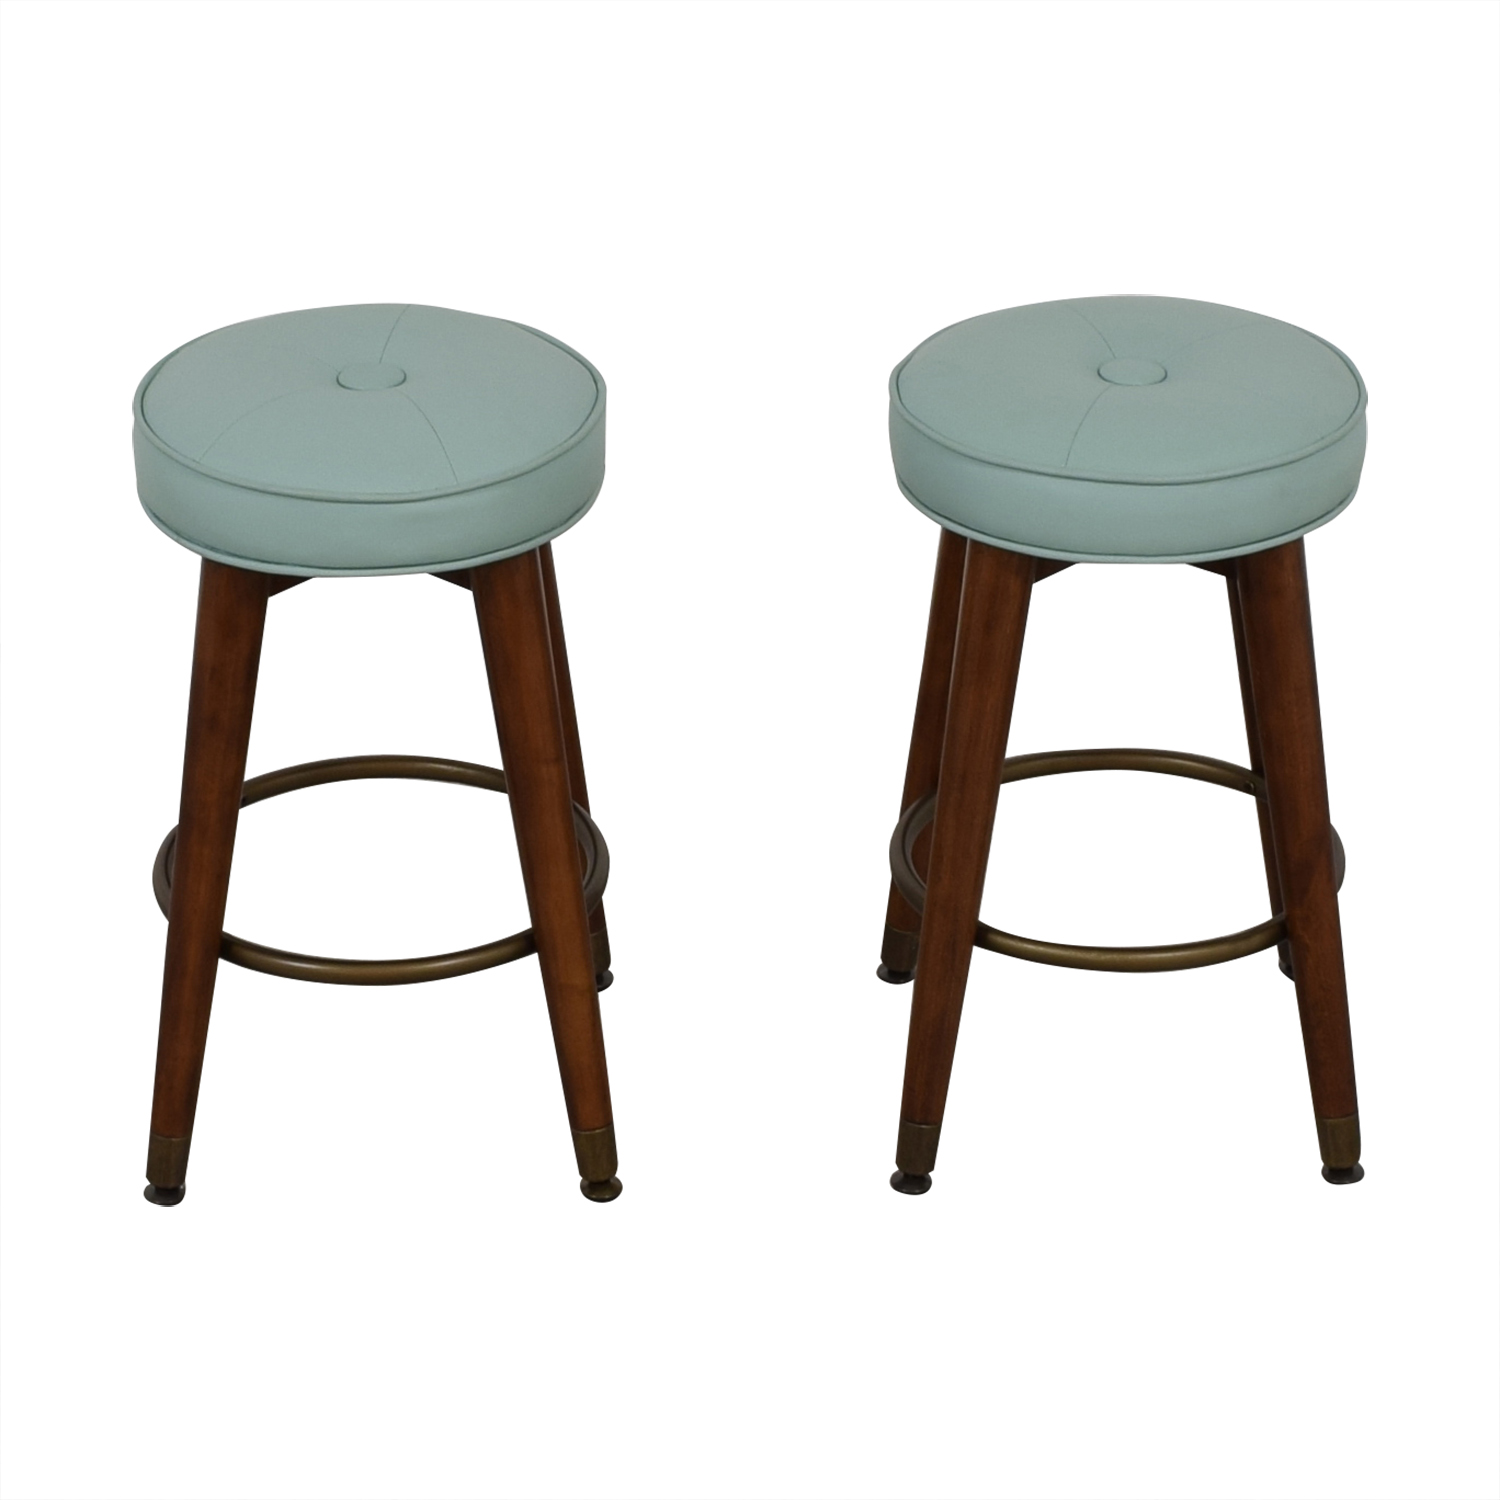 shop Teal and Wood Stools  Chairs